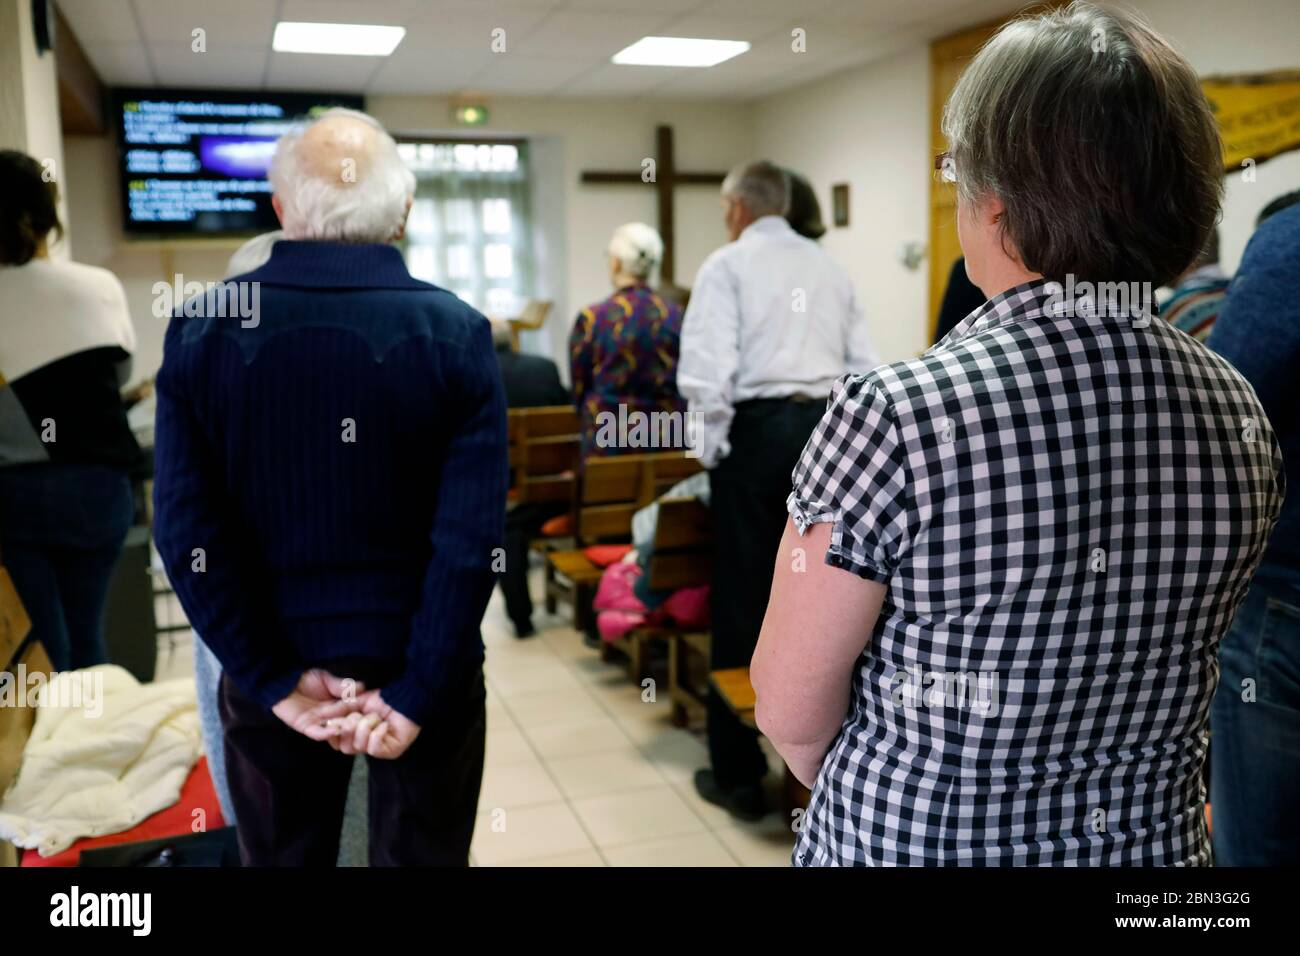 Protestant Evangelical Church. Sunday service. Cluses. France. Stock Photo